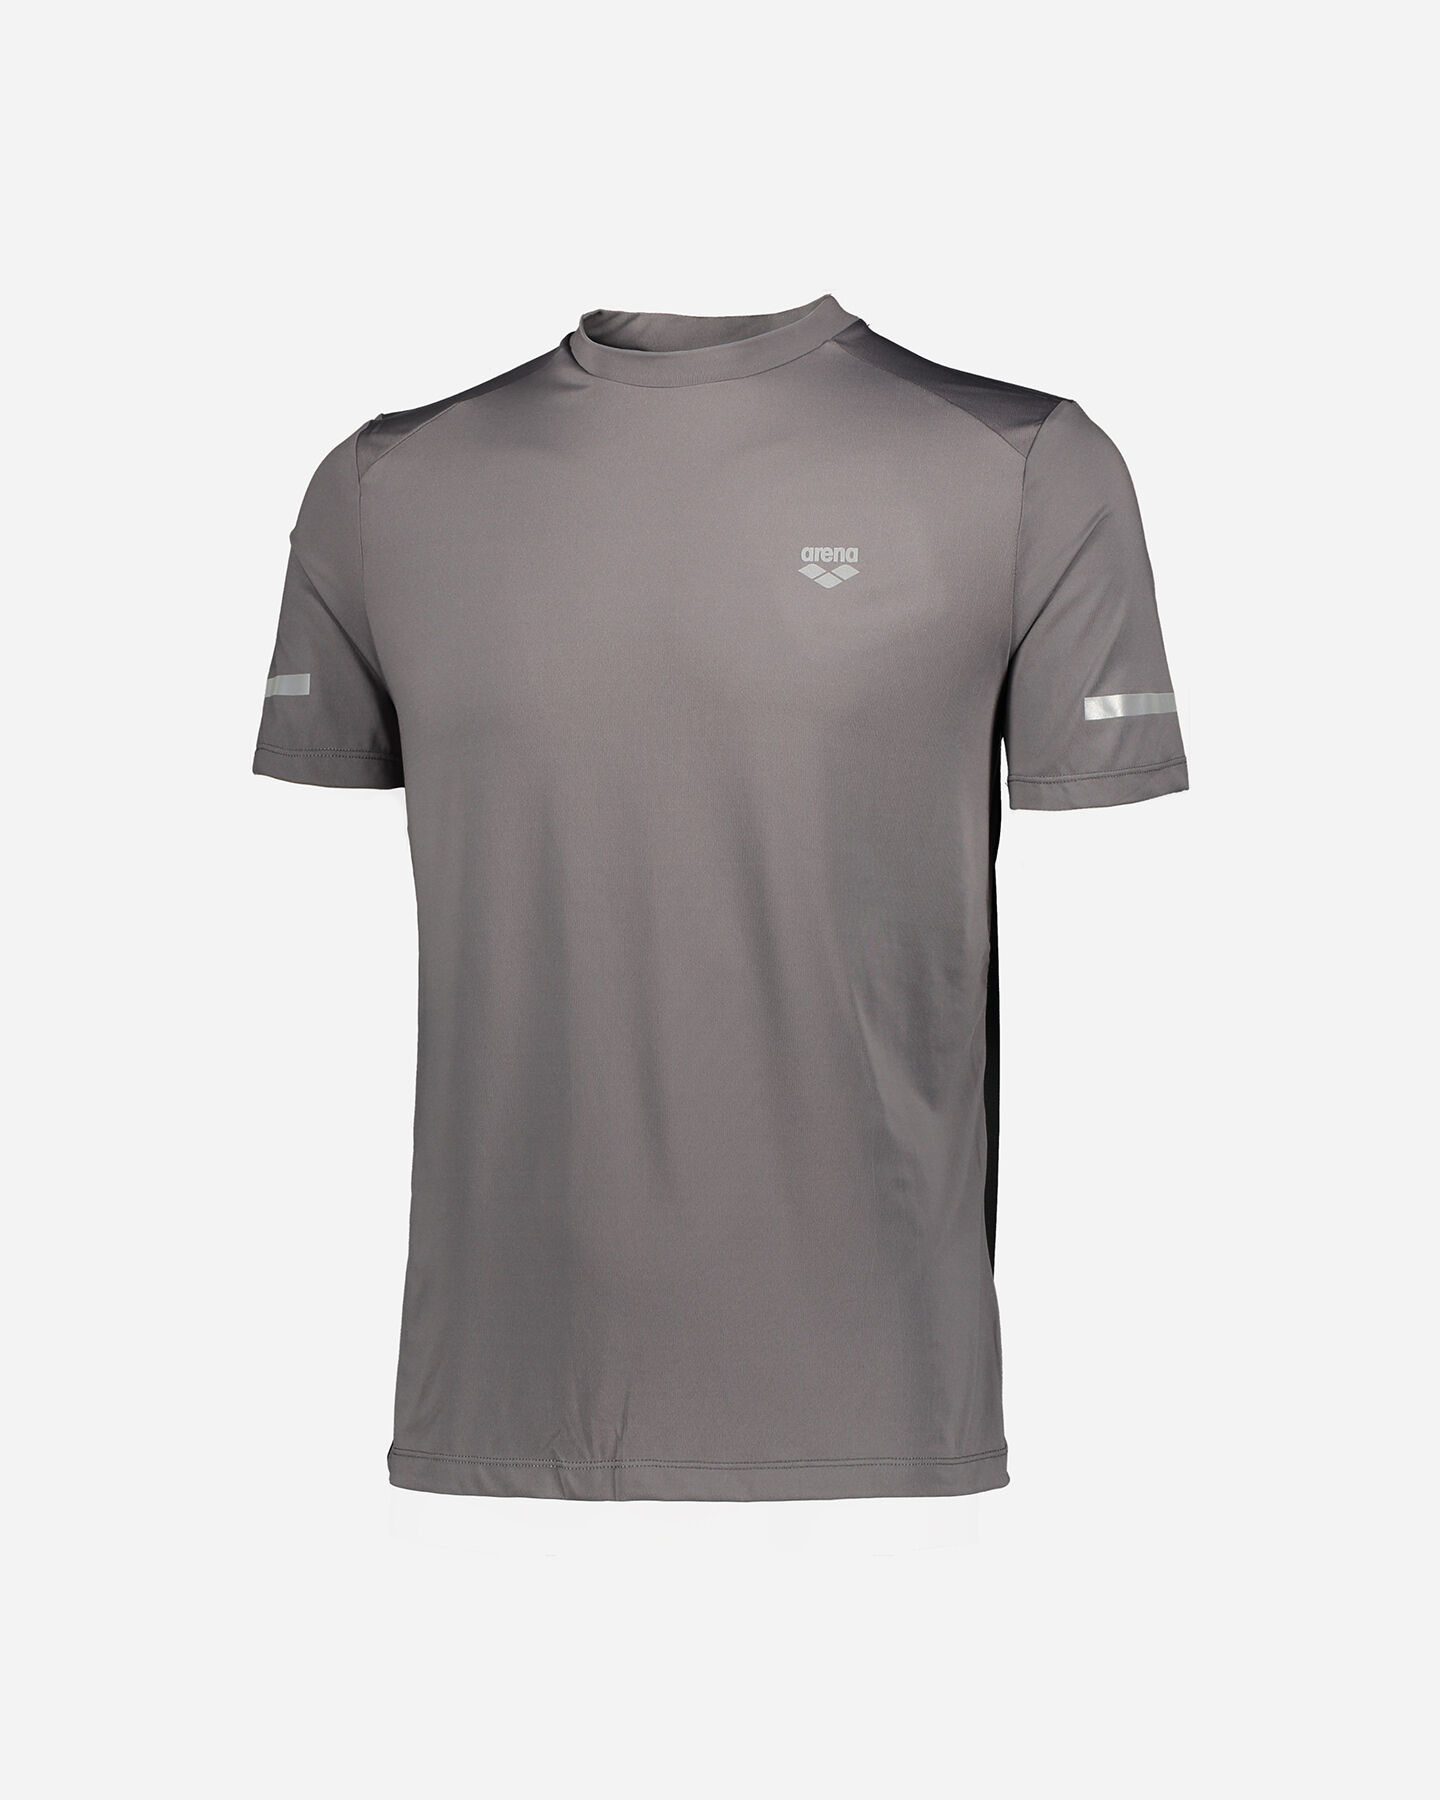 T-Shirt training ARENA ROYAL BACK MESH M S4088059 scatto 5